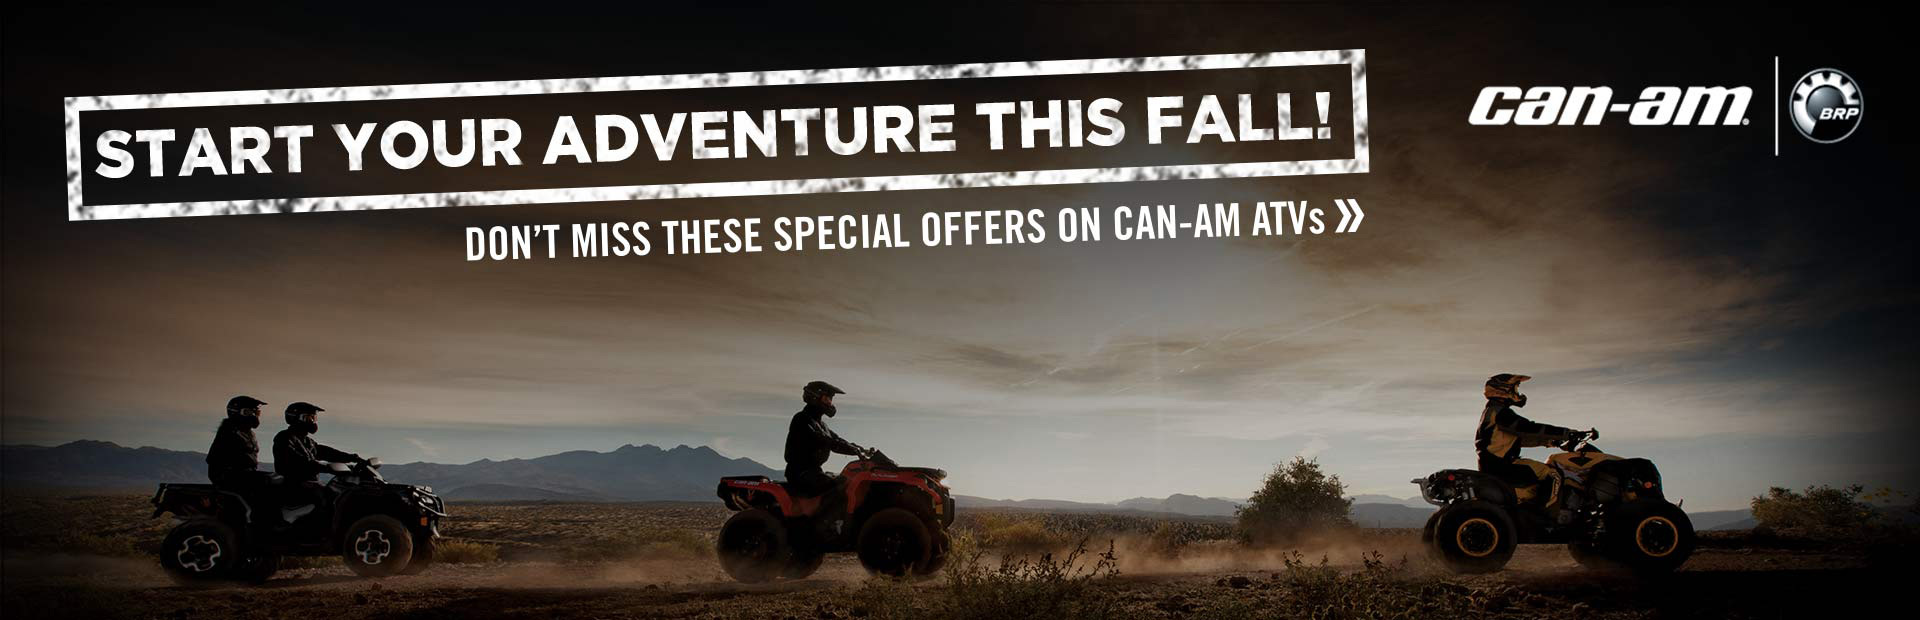 Start your adventure this fall! Click here for special offers on Can-Am ATVs.